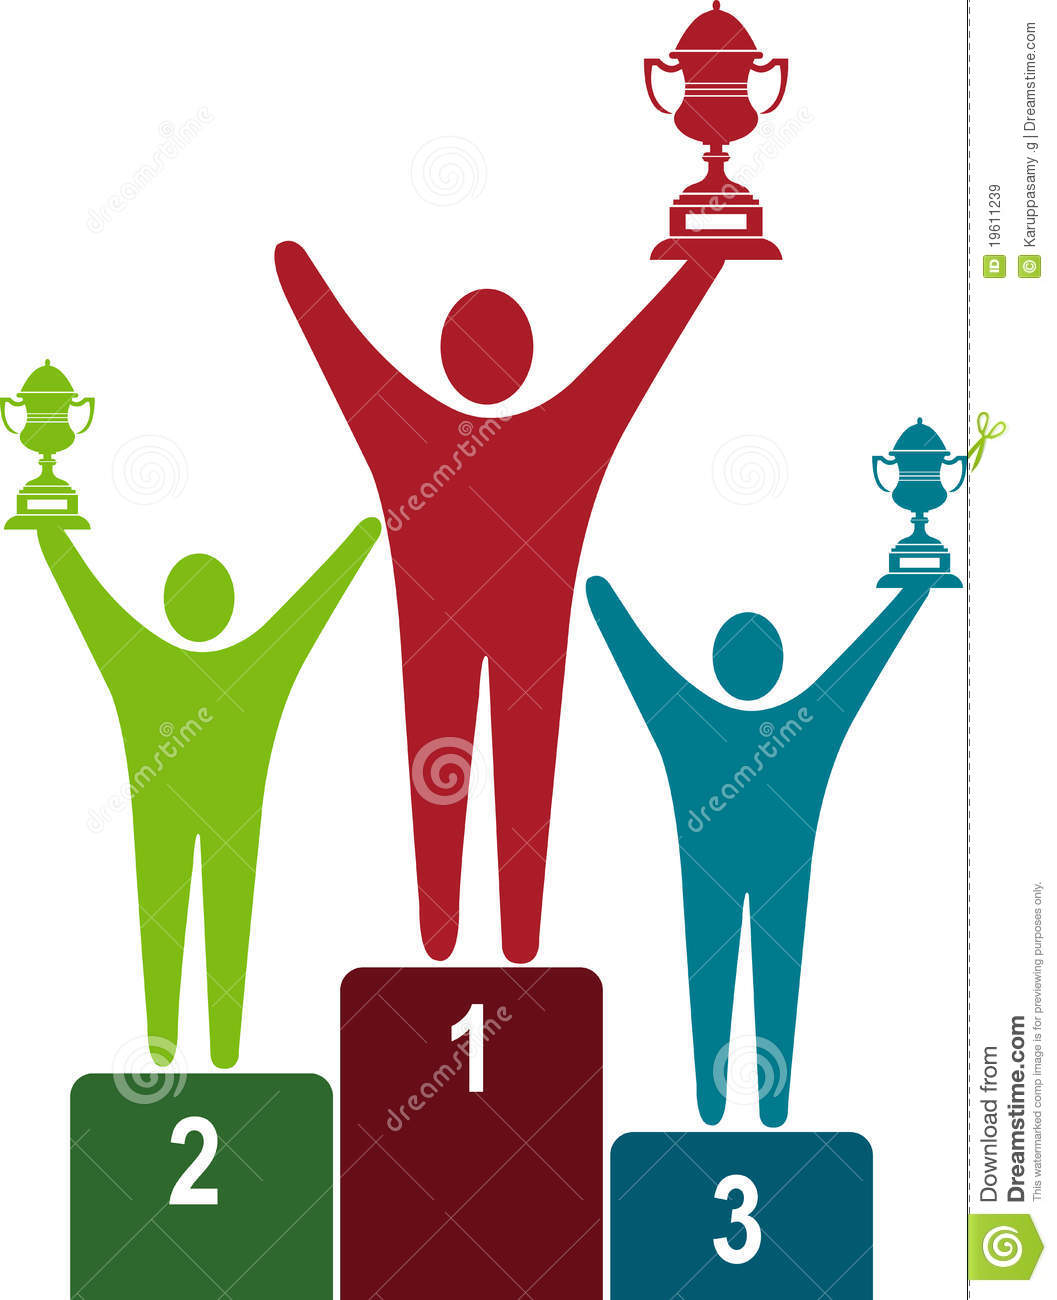 Winners Logo Royalty Free Stock Images